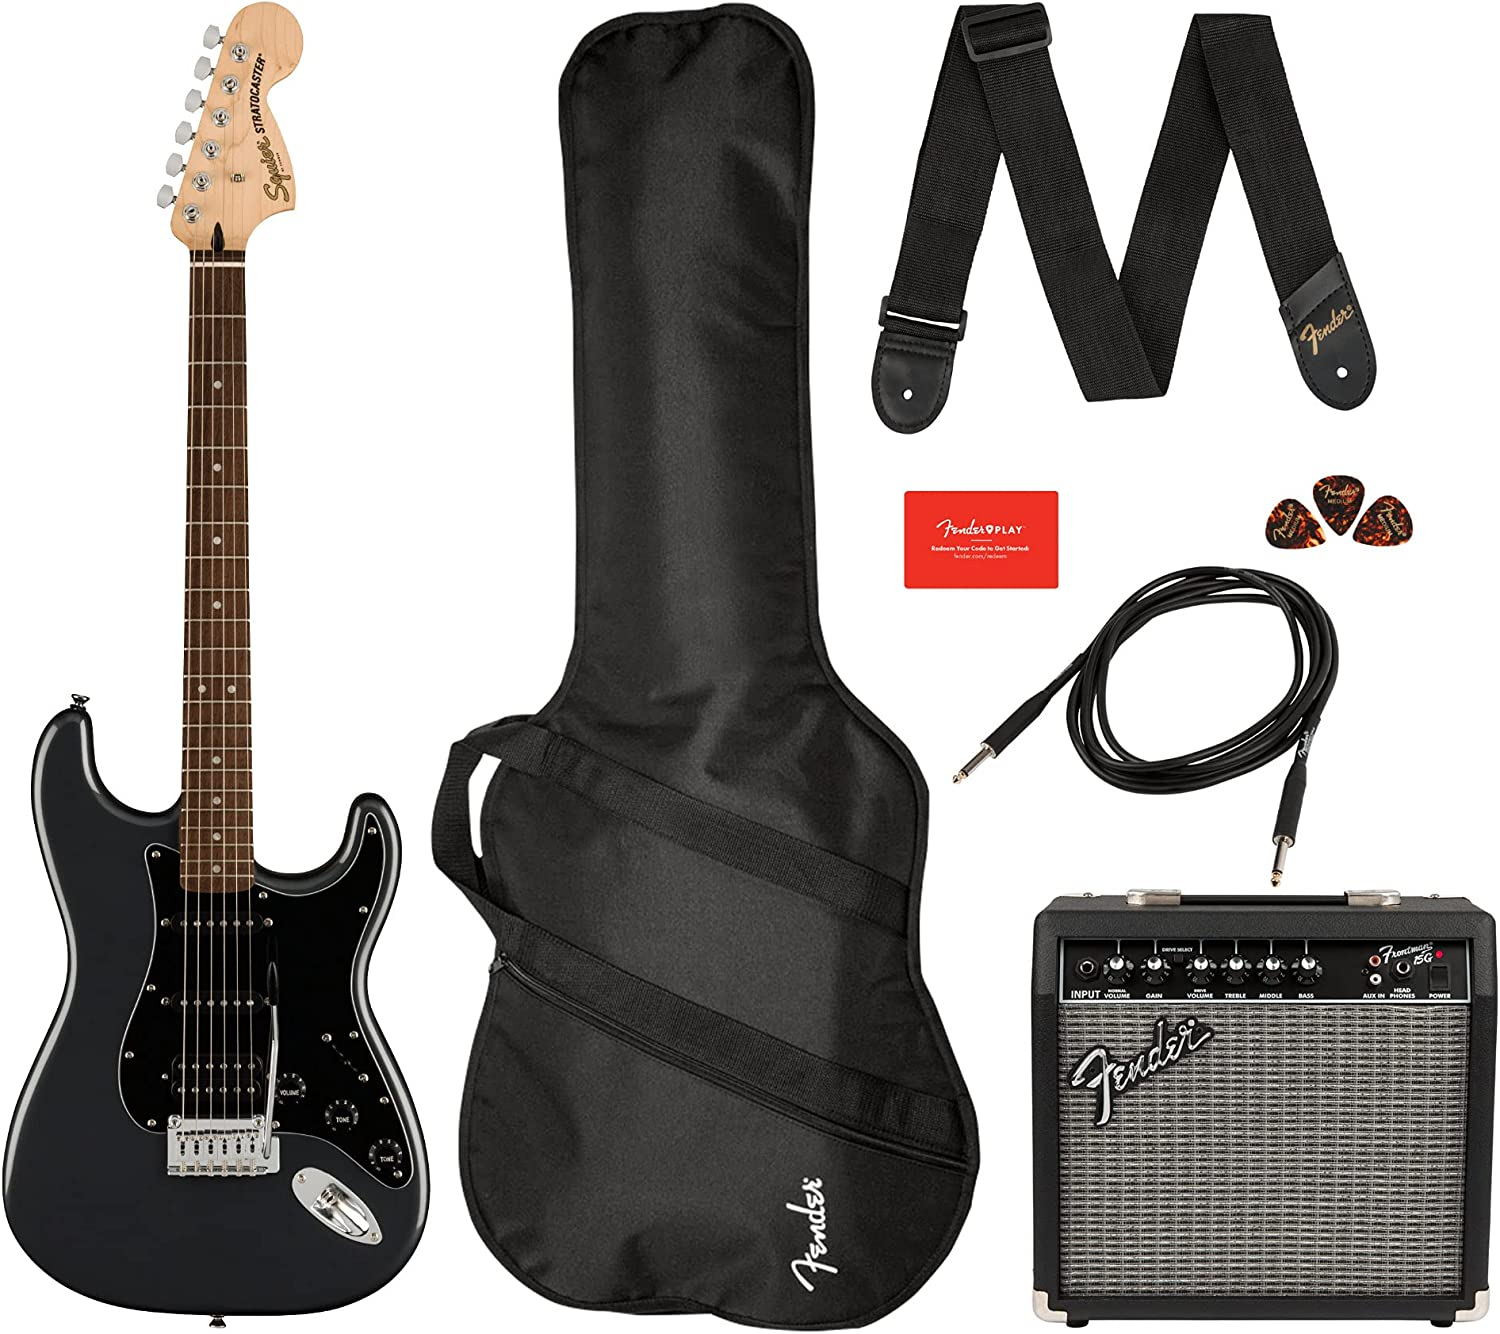 Squier Fender Affinity Stratocaster HSS LRL Charcoal Frost Metallic Pack